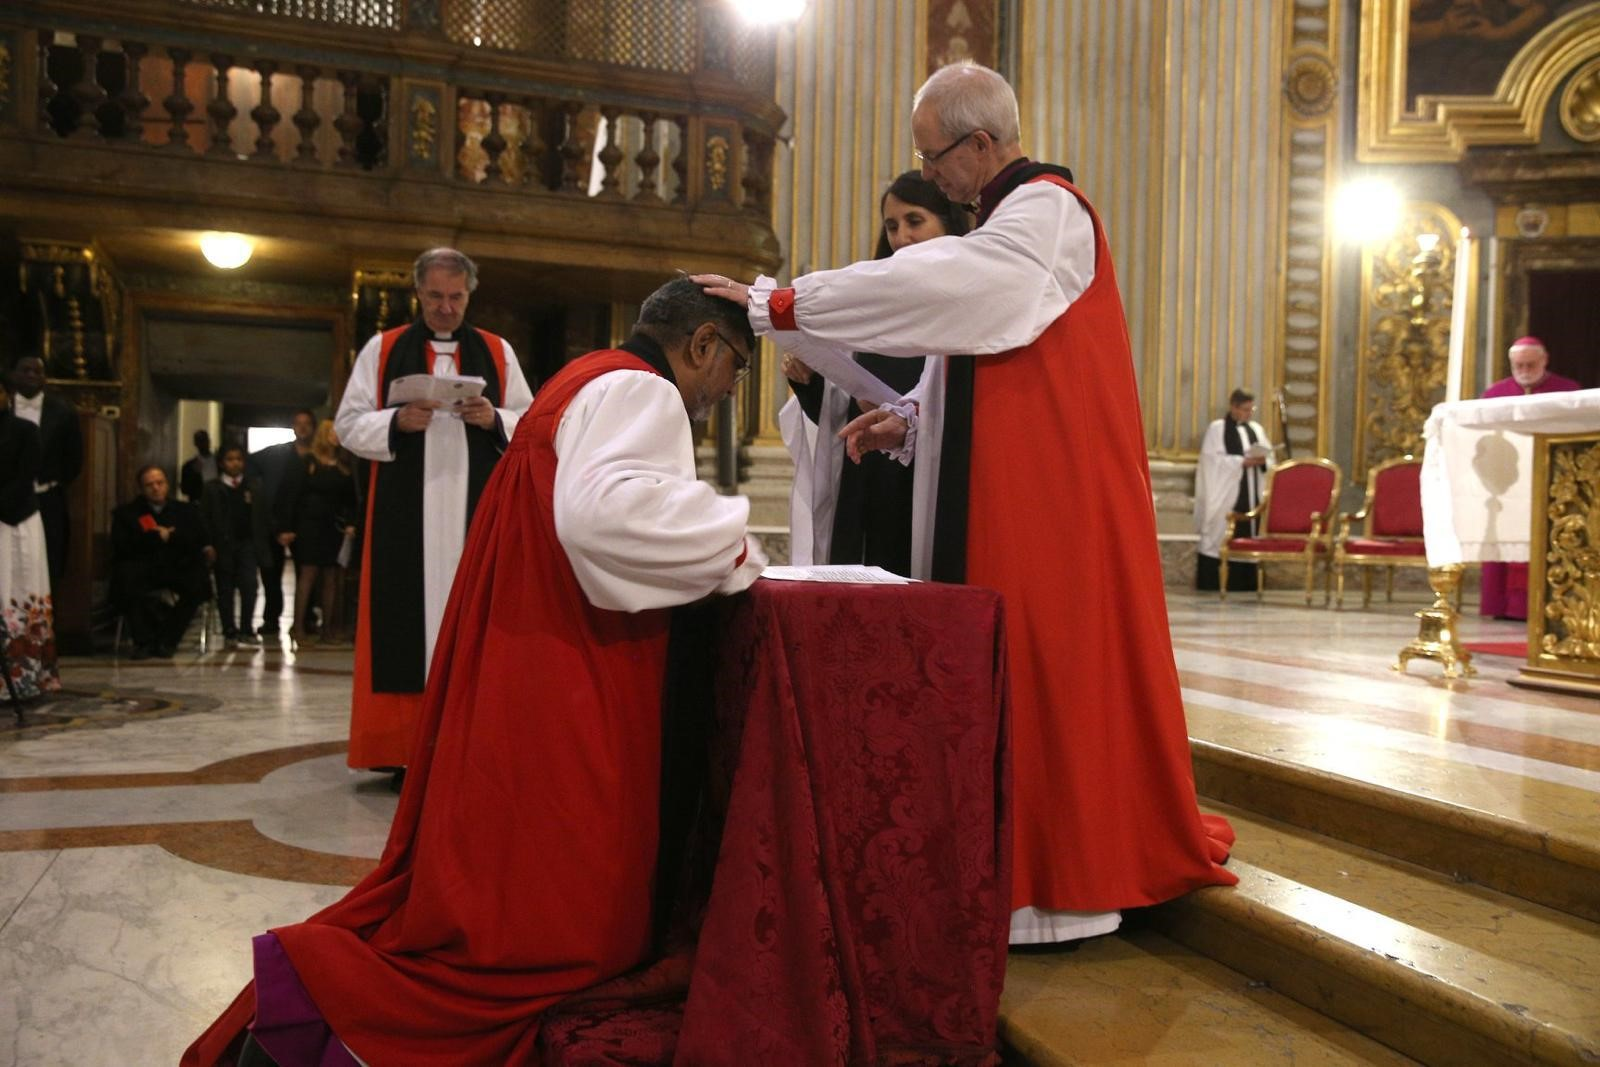 Archbishop Ian Ernest being commissioned as Director of the Centre by the Archbishop of Canterbury, the Most Revd Justin Welby, as Bishop Michael Burrows looks on in November 2019.